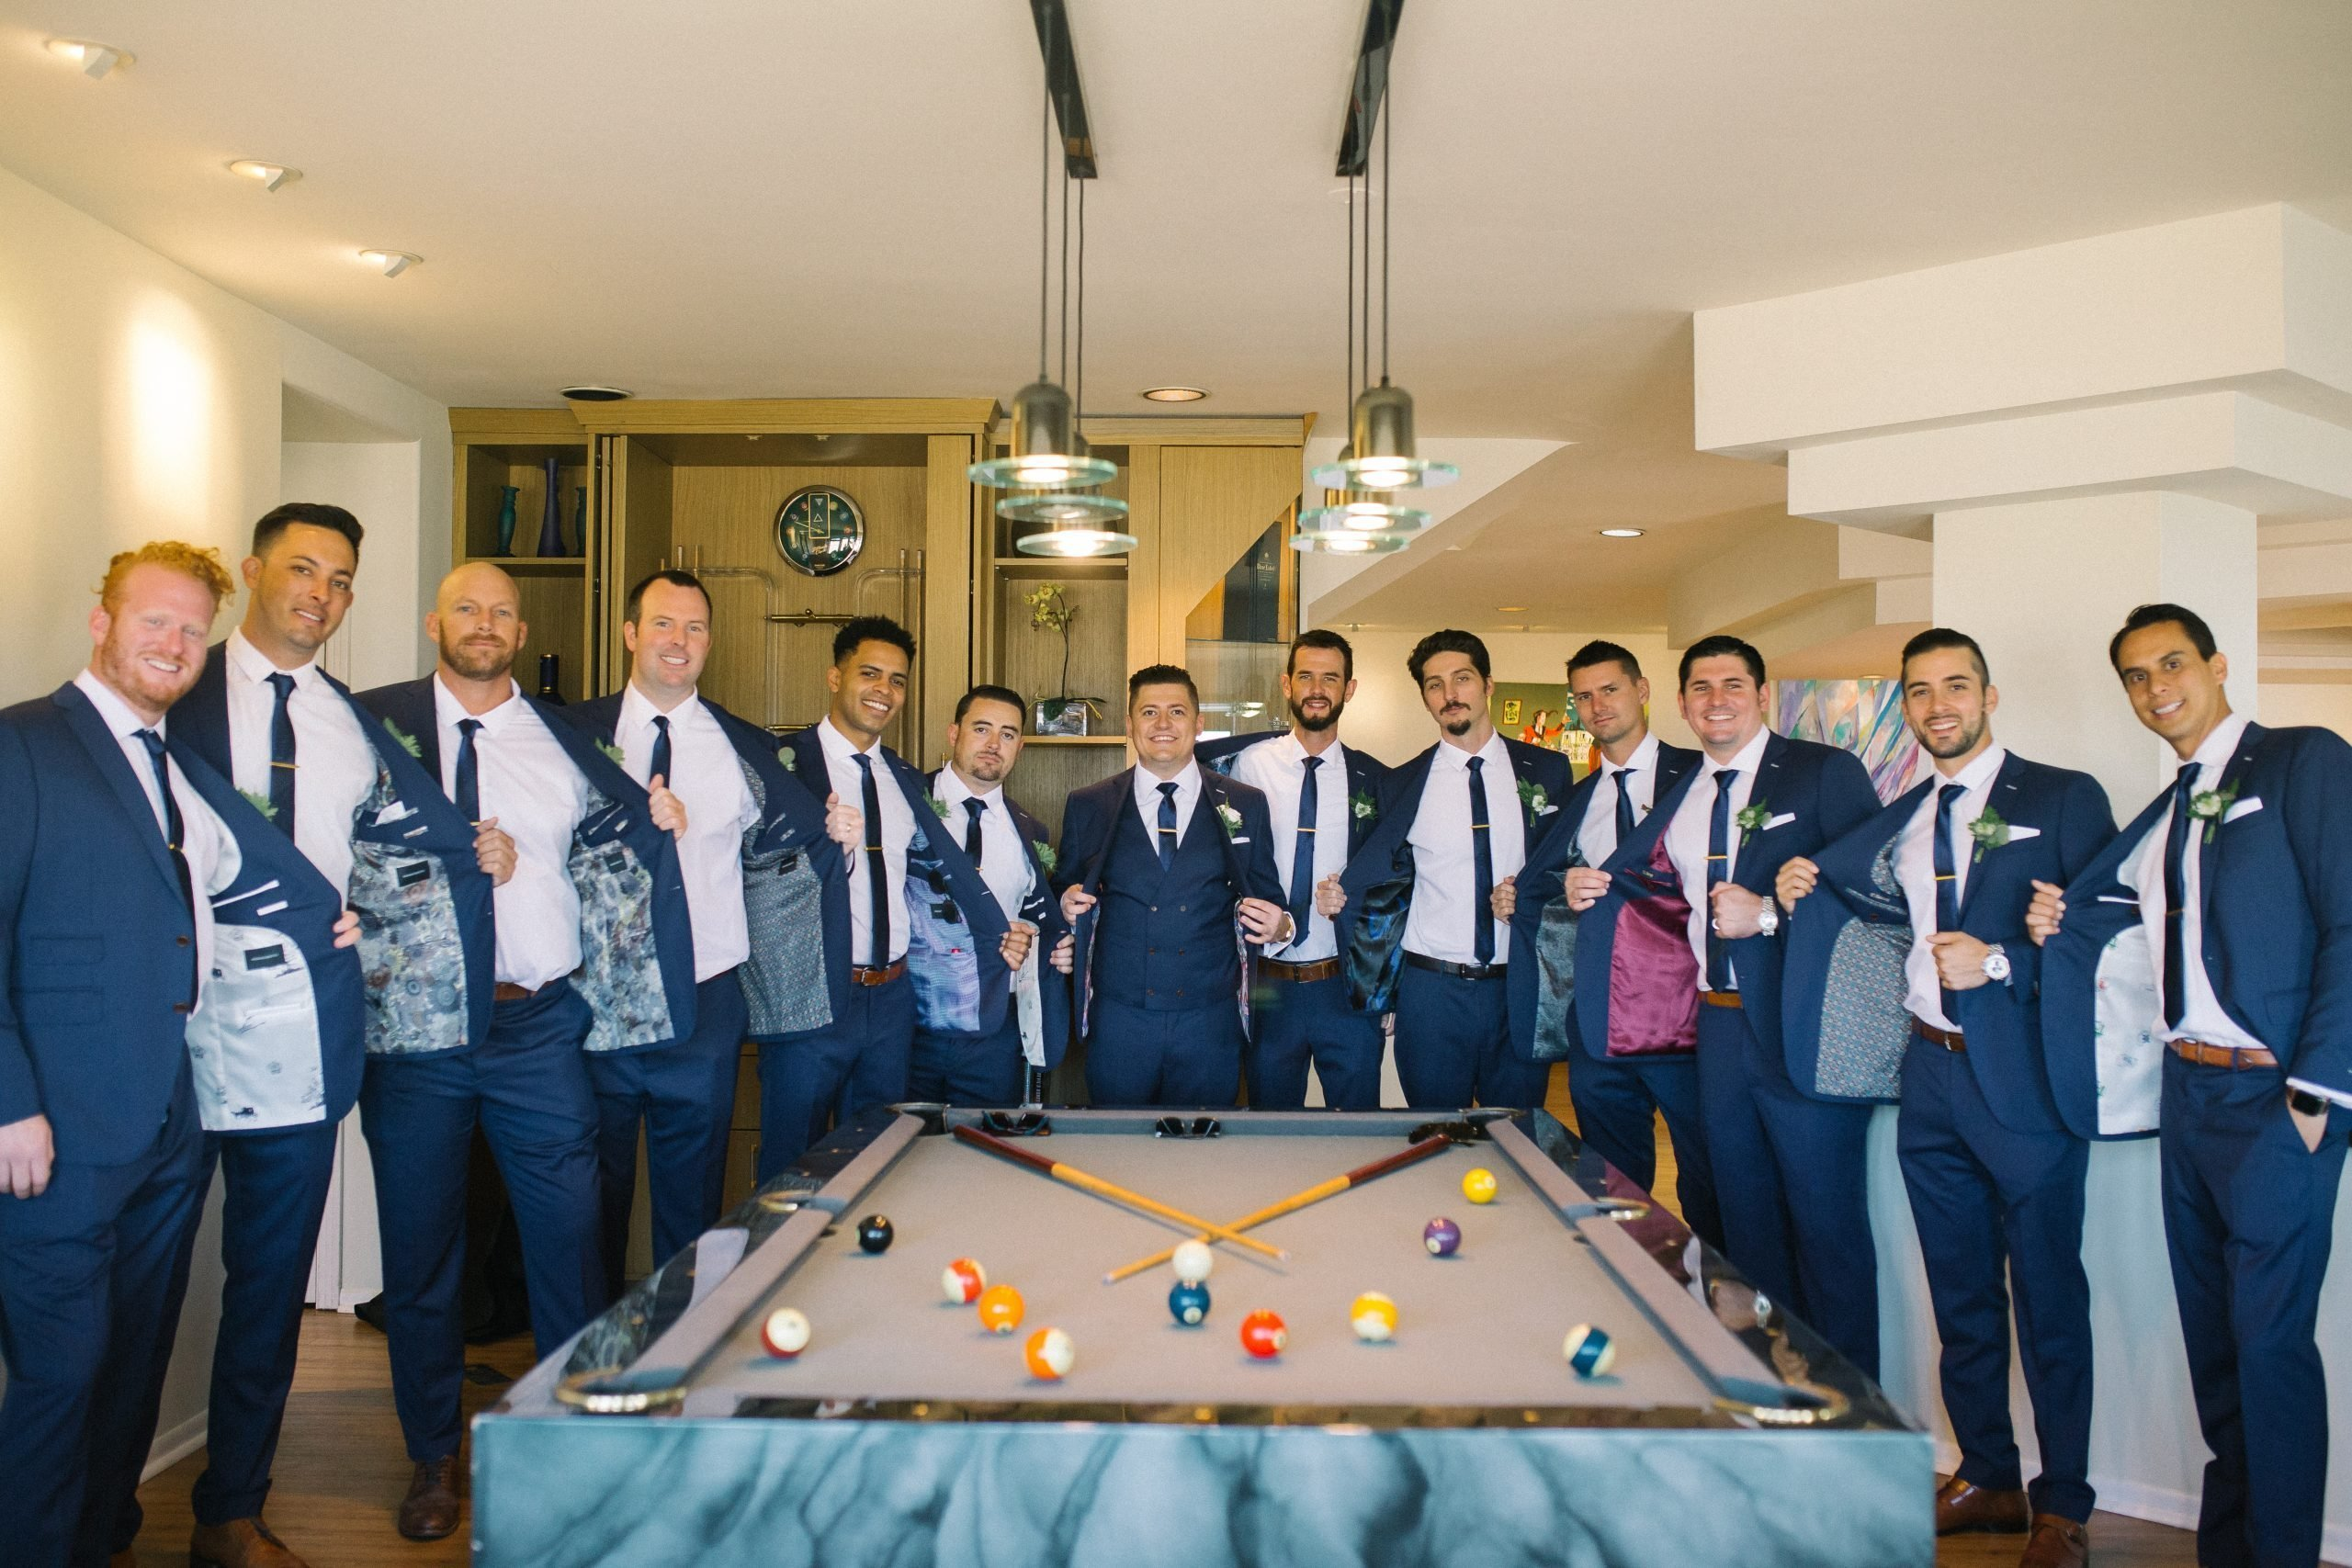 Groomsmen Dressing Up with Custom Suits